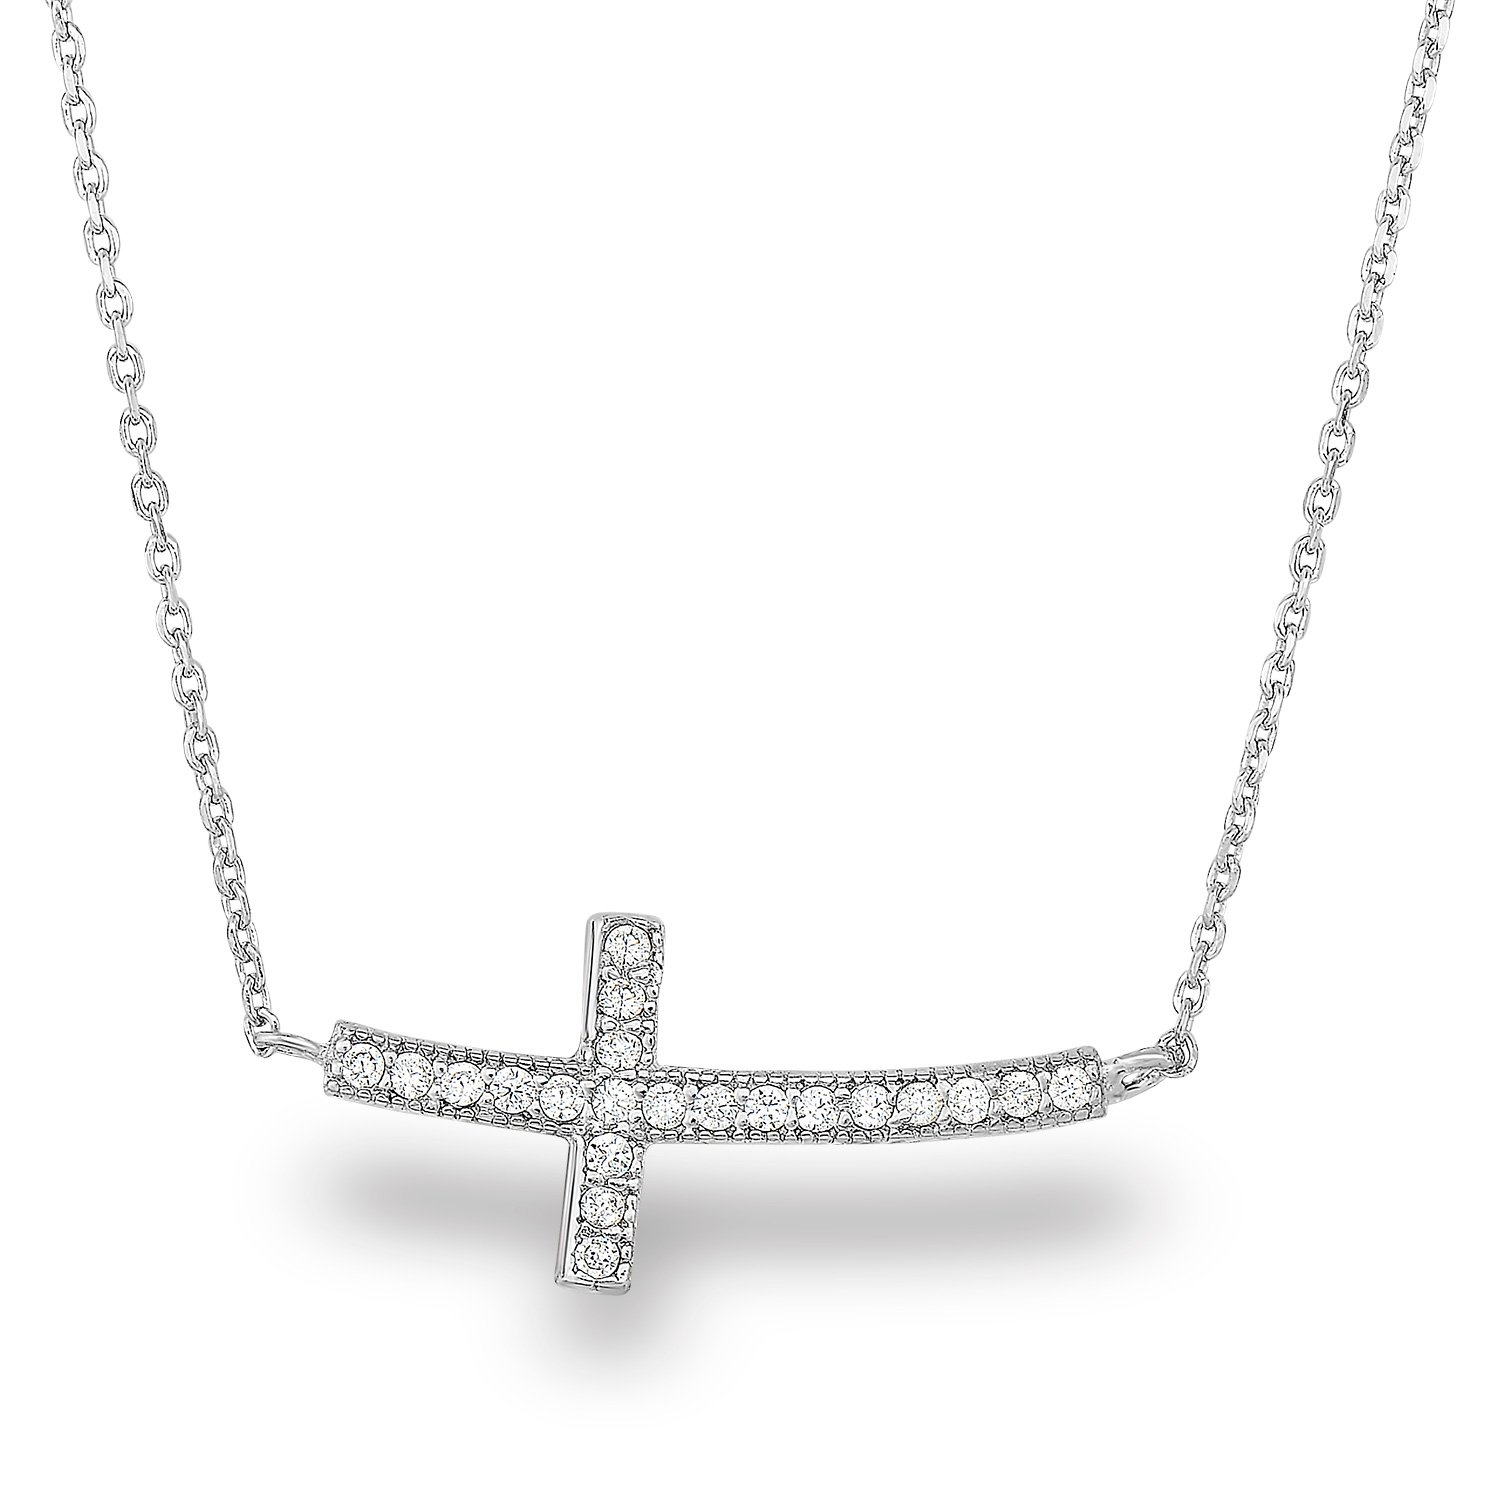 Rhodium Plated Sterling Silver Cubic Zirconia Curved Sideways Cross Chain Necklace,18''